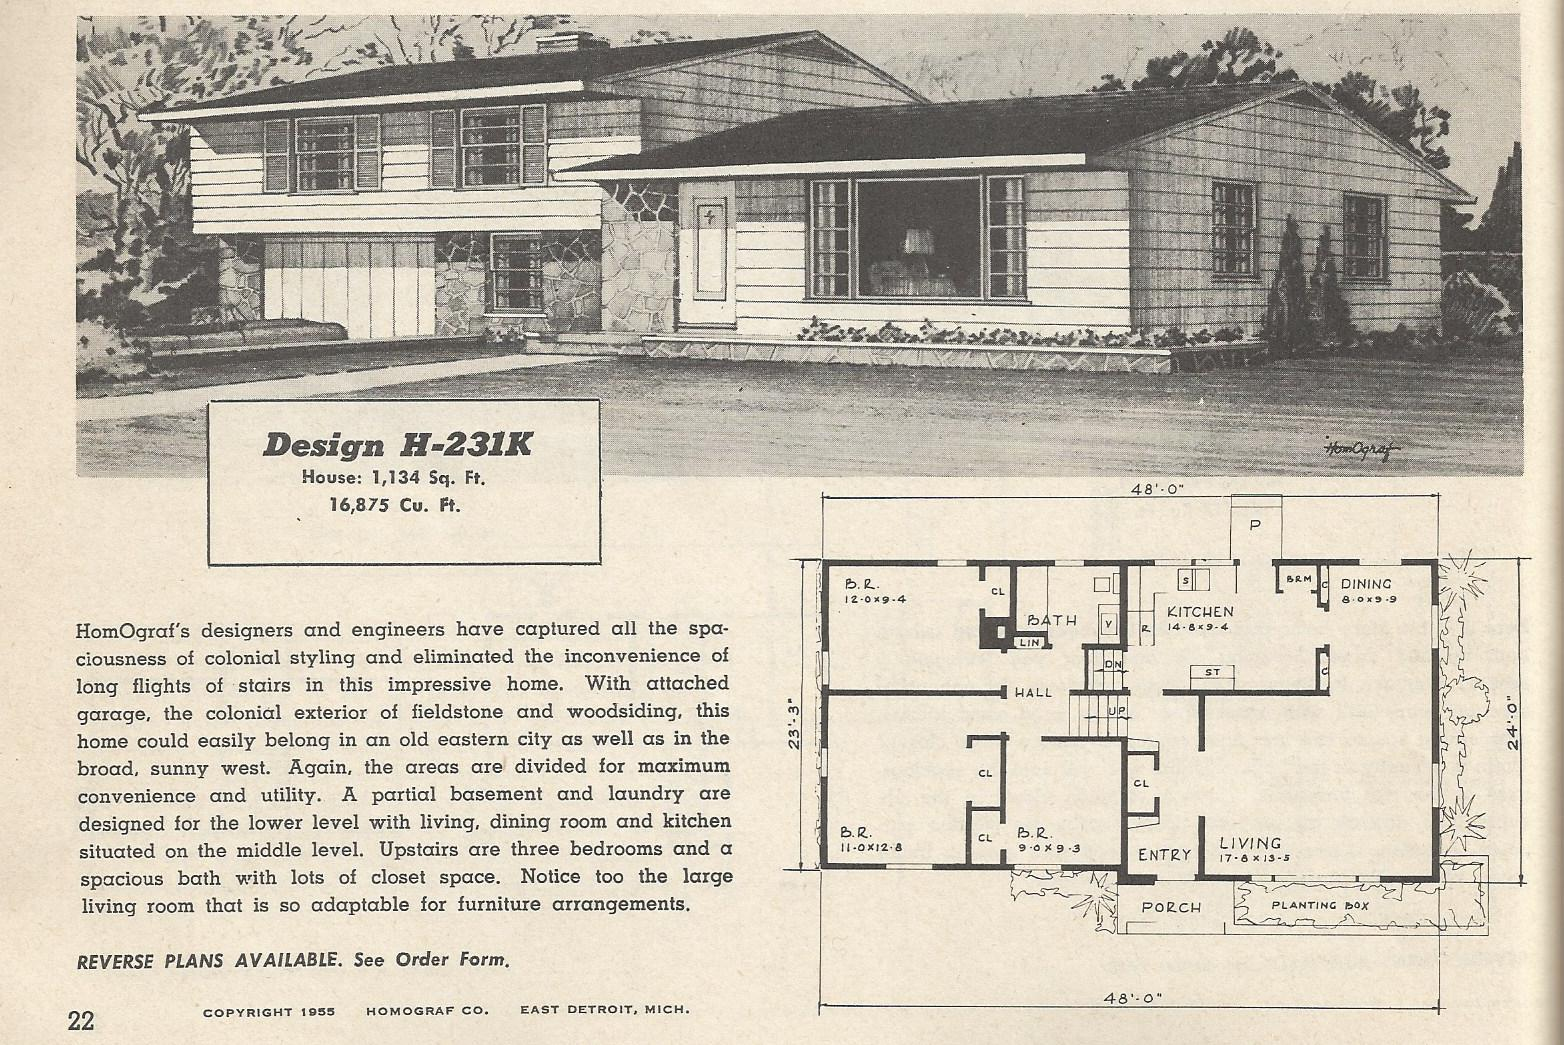 Vintage House Plans 1950s Two Story 1 12 Story and Ramblers